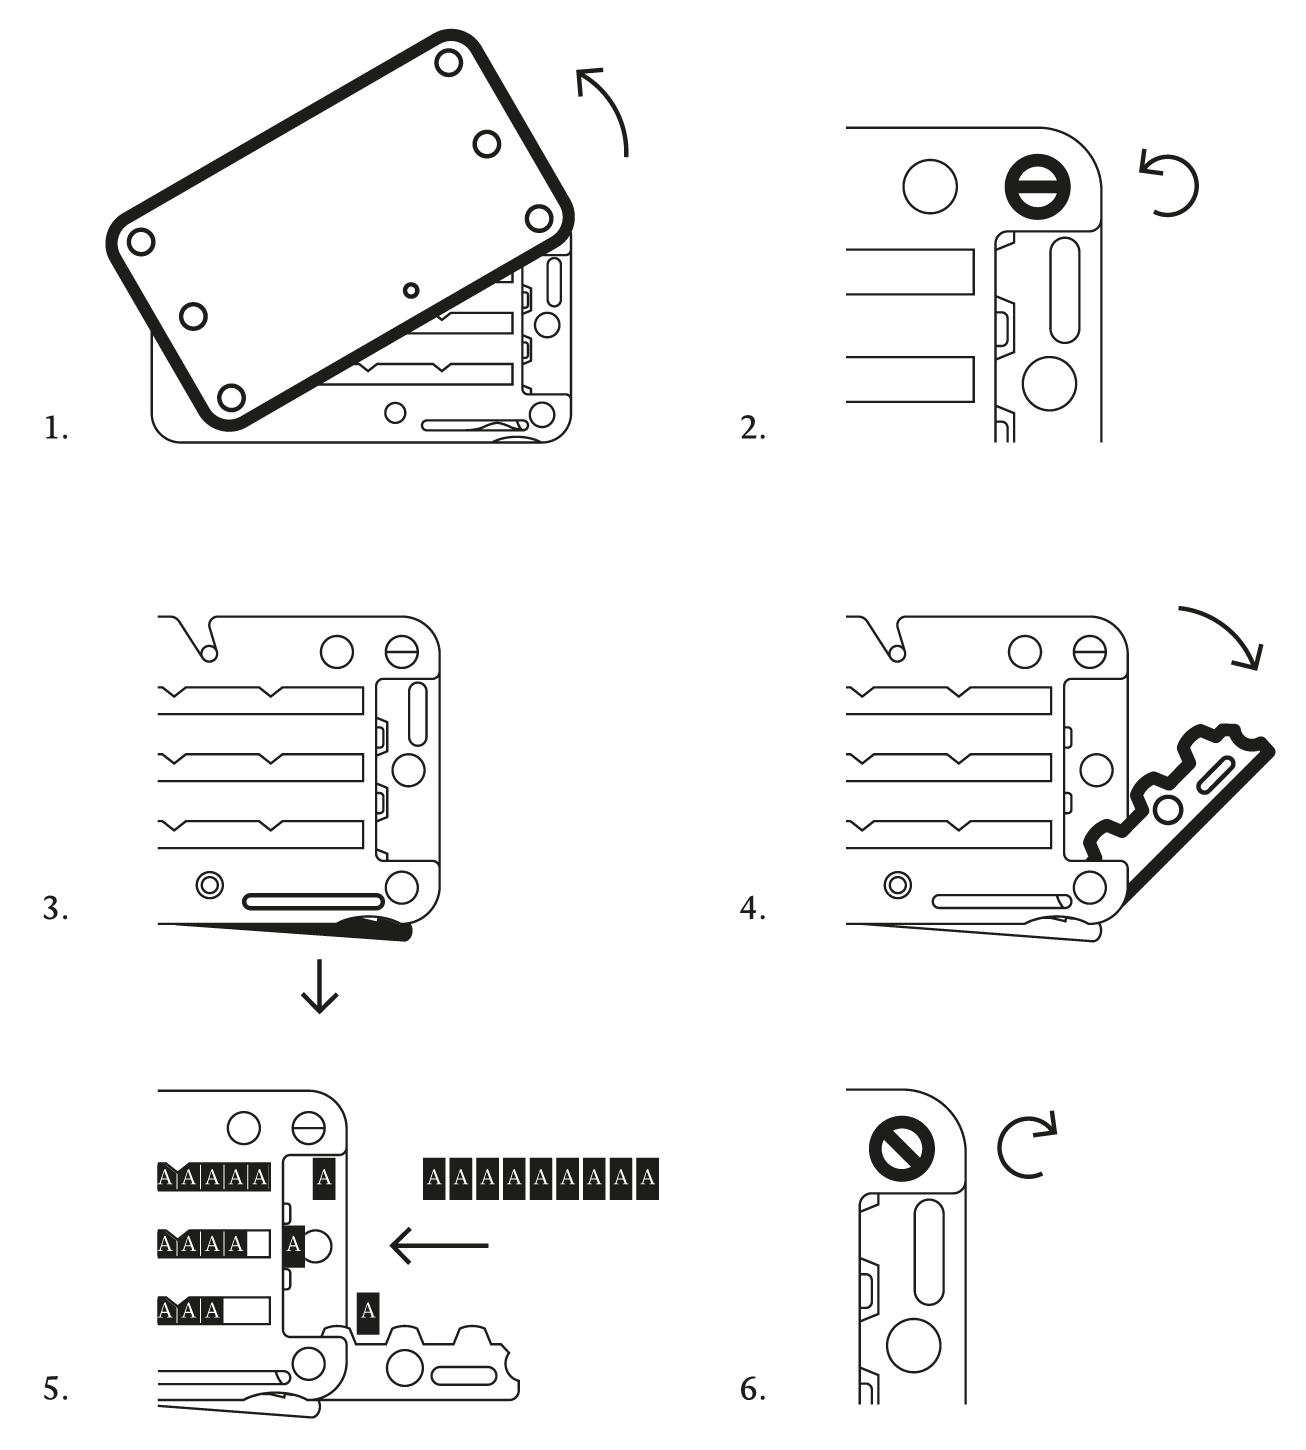 Cryptosteel User Manual